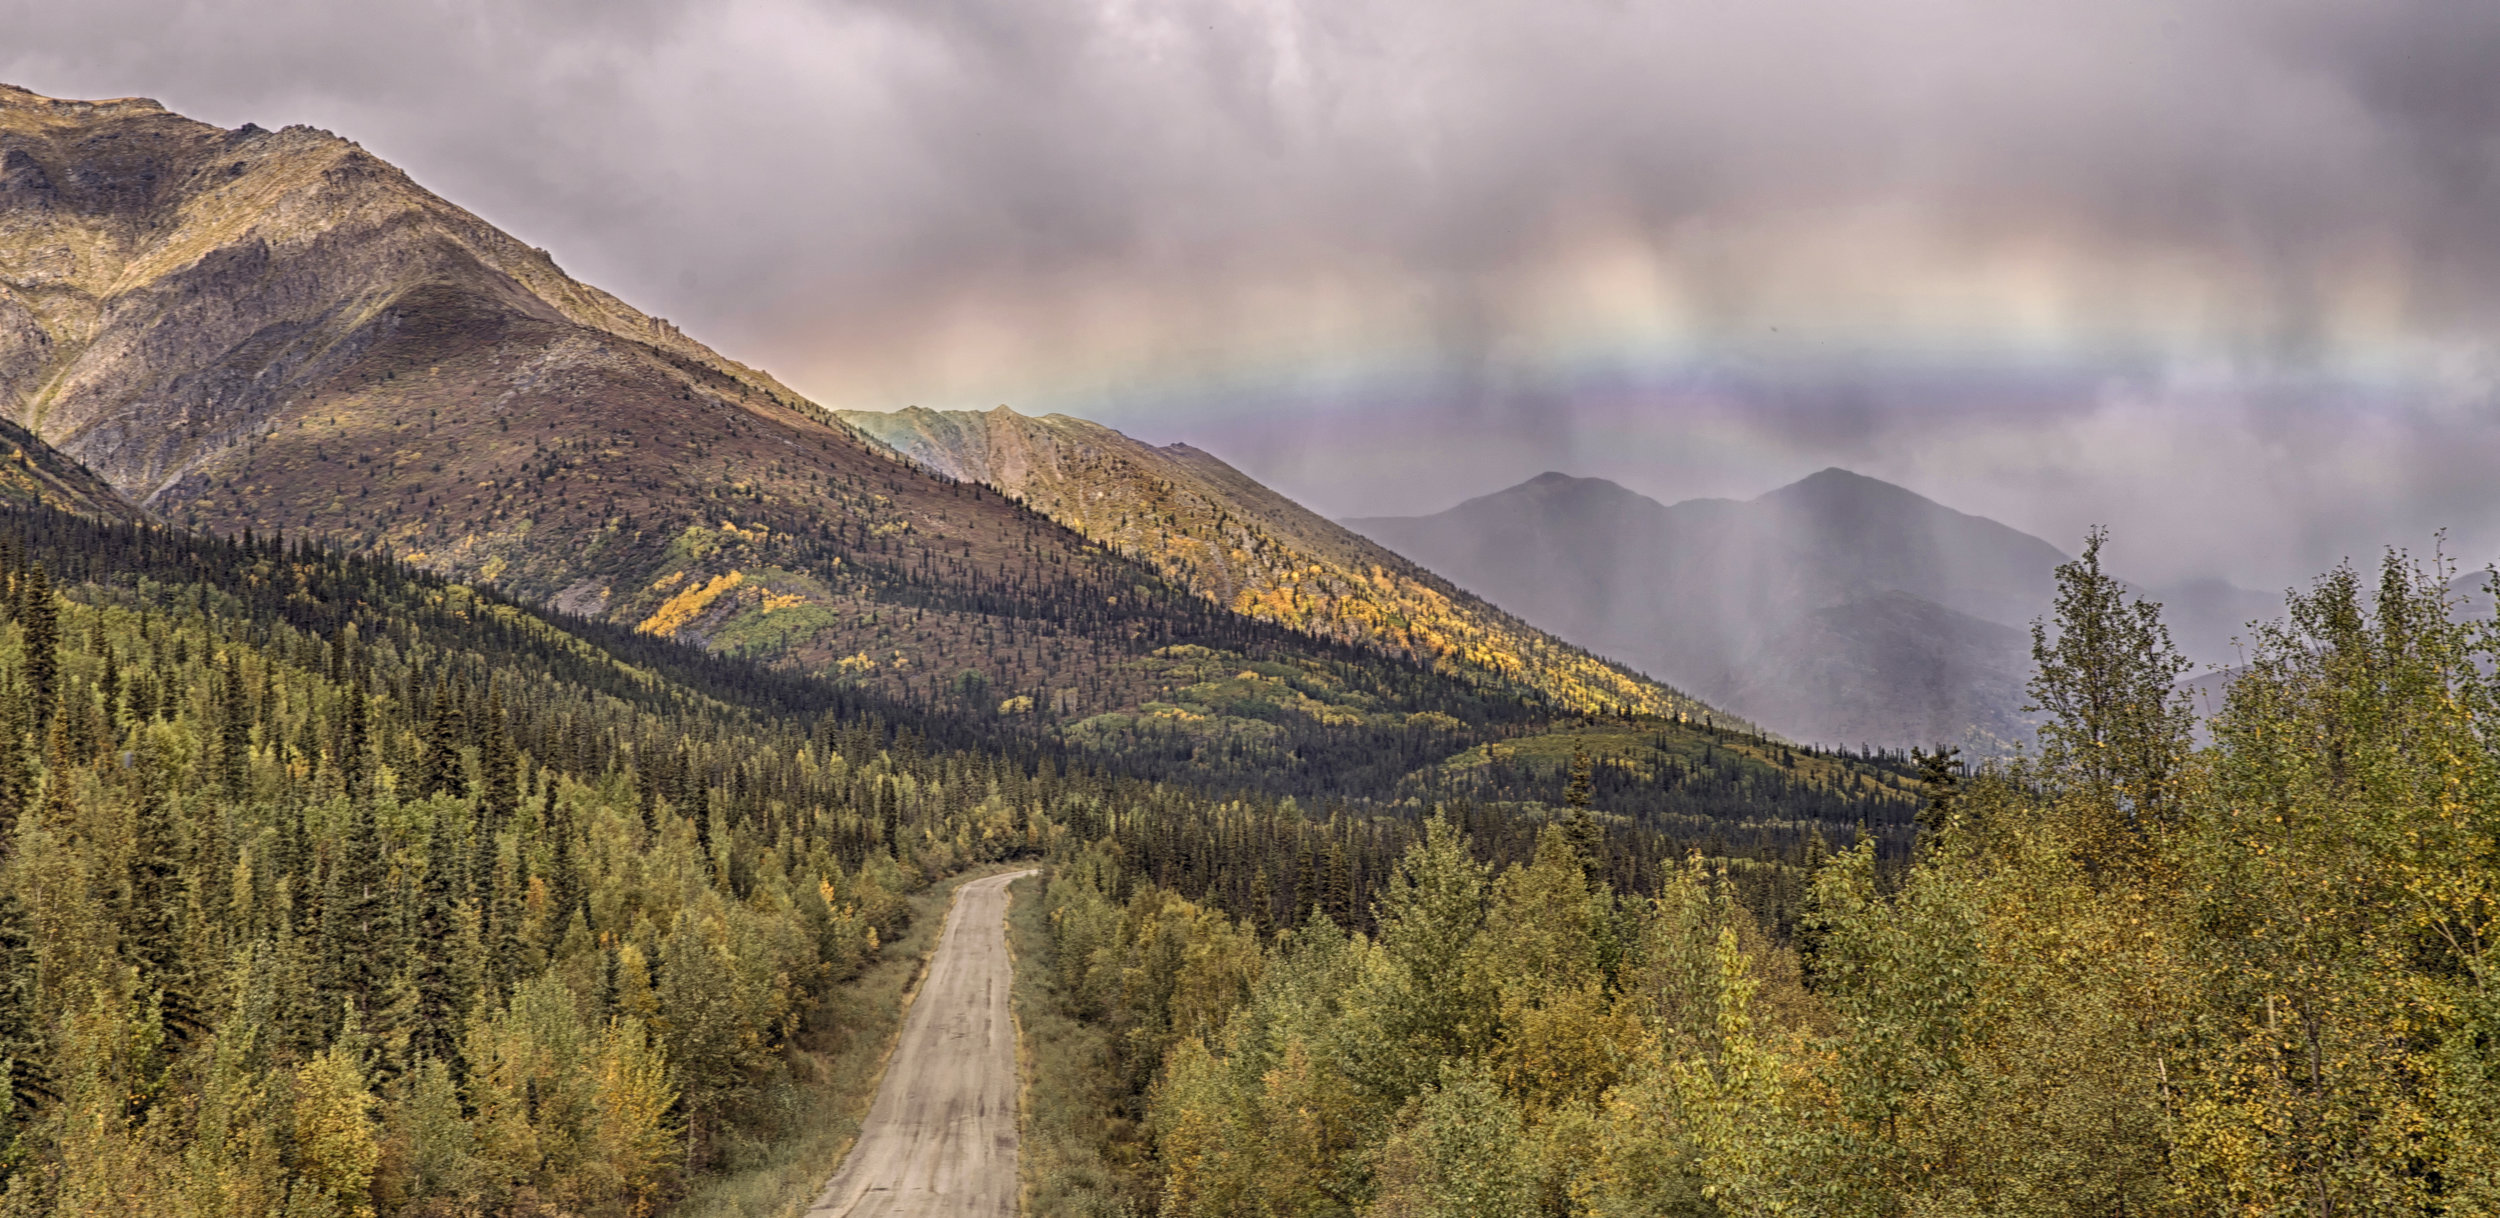 Rainbow over Dempster Highway - Across the Blue Planet